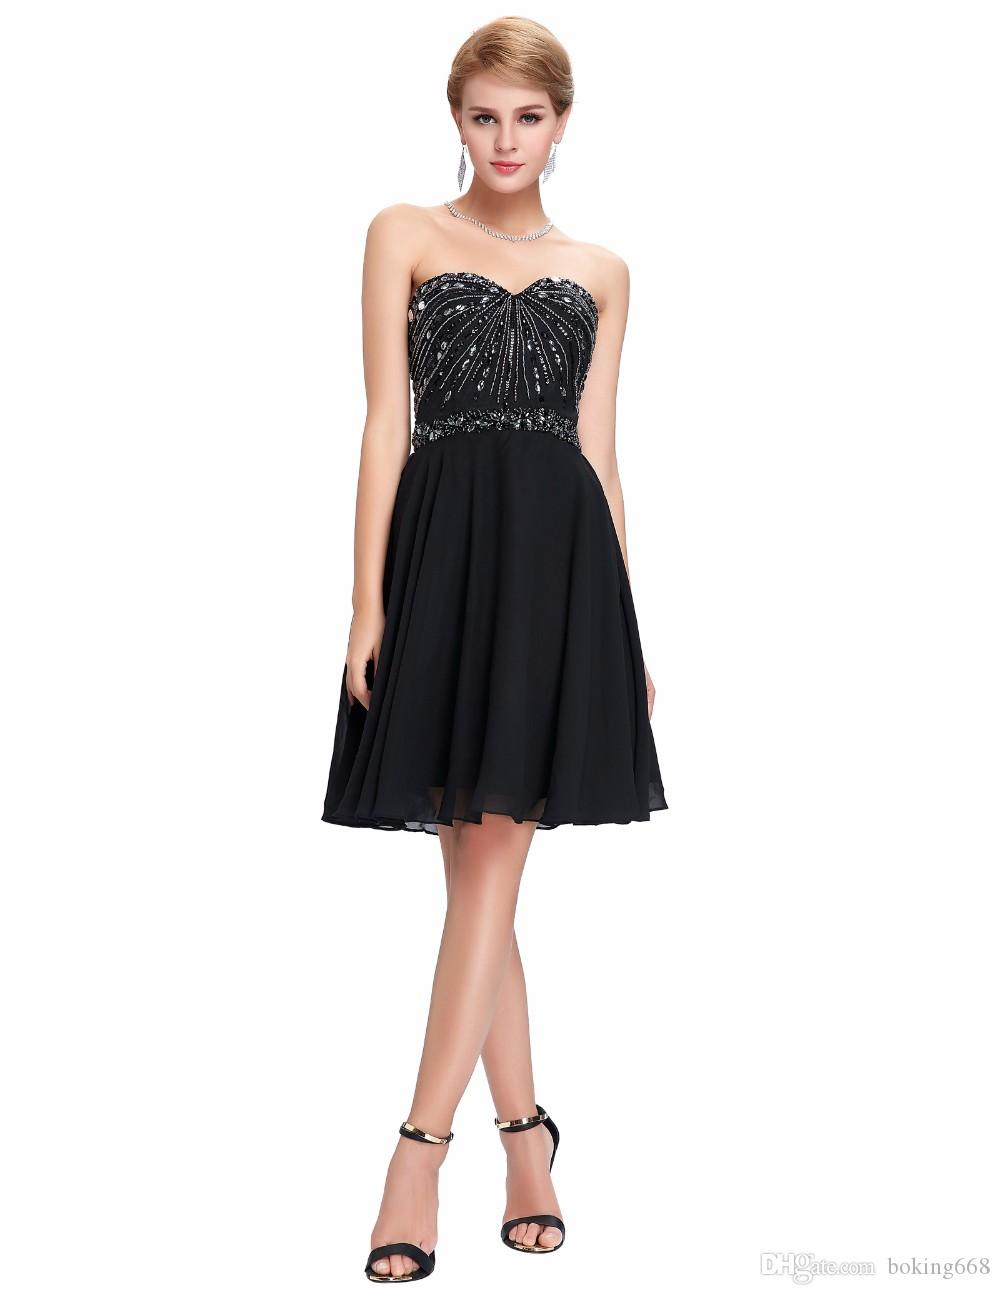 Black short cocktail dresses vestido 2016 cheap chiffon short prom black short cocktail dresses vestido 2016 cheap chiffon short prom dresses beading elegant strapless special occasion party dress grey cocktail dress long ombrellifo Image collections